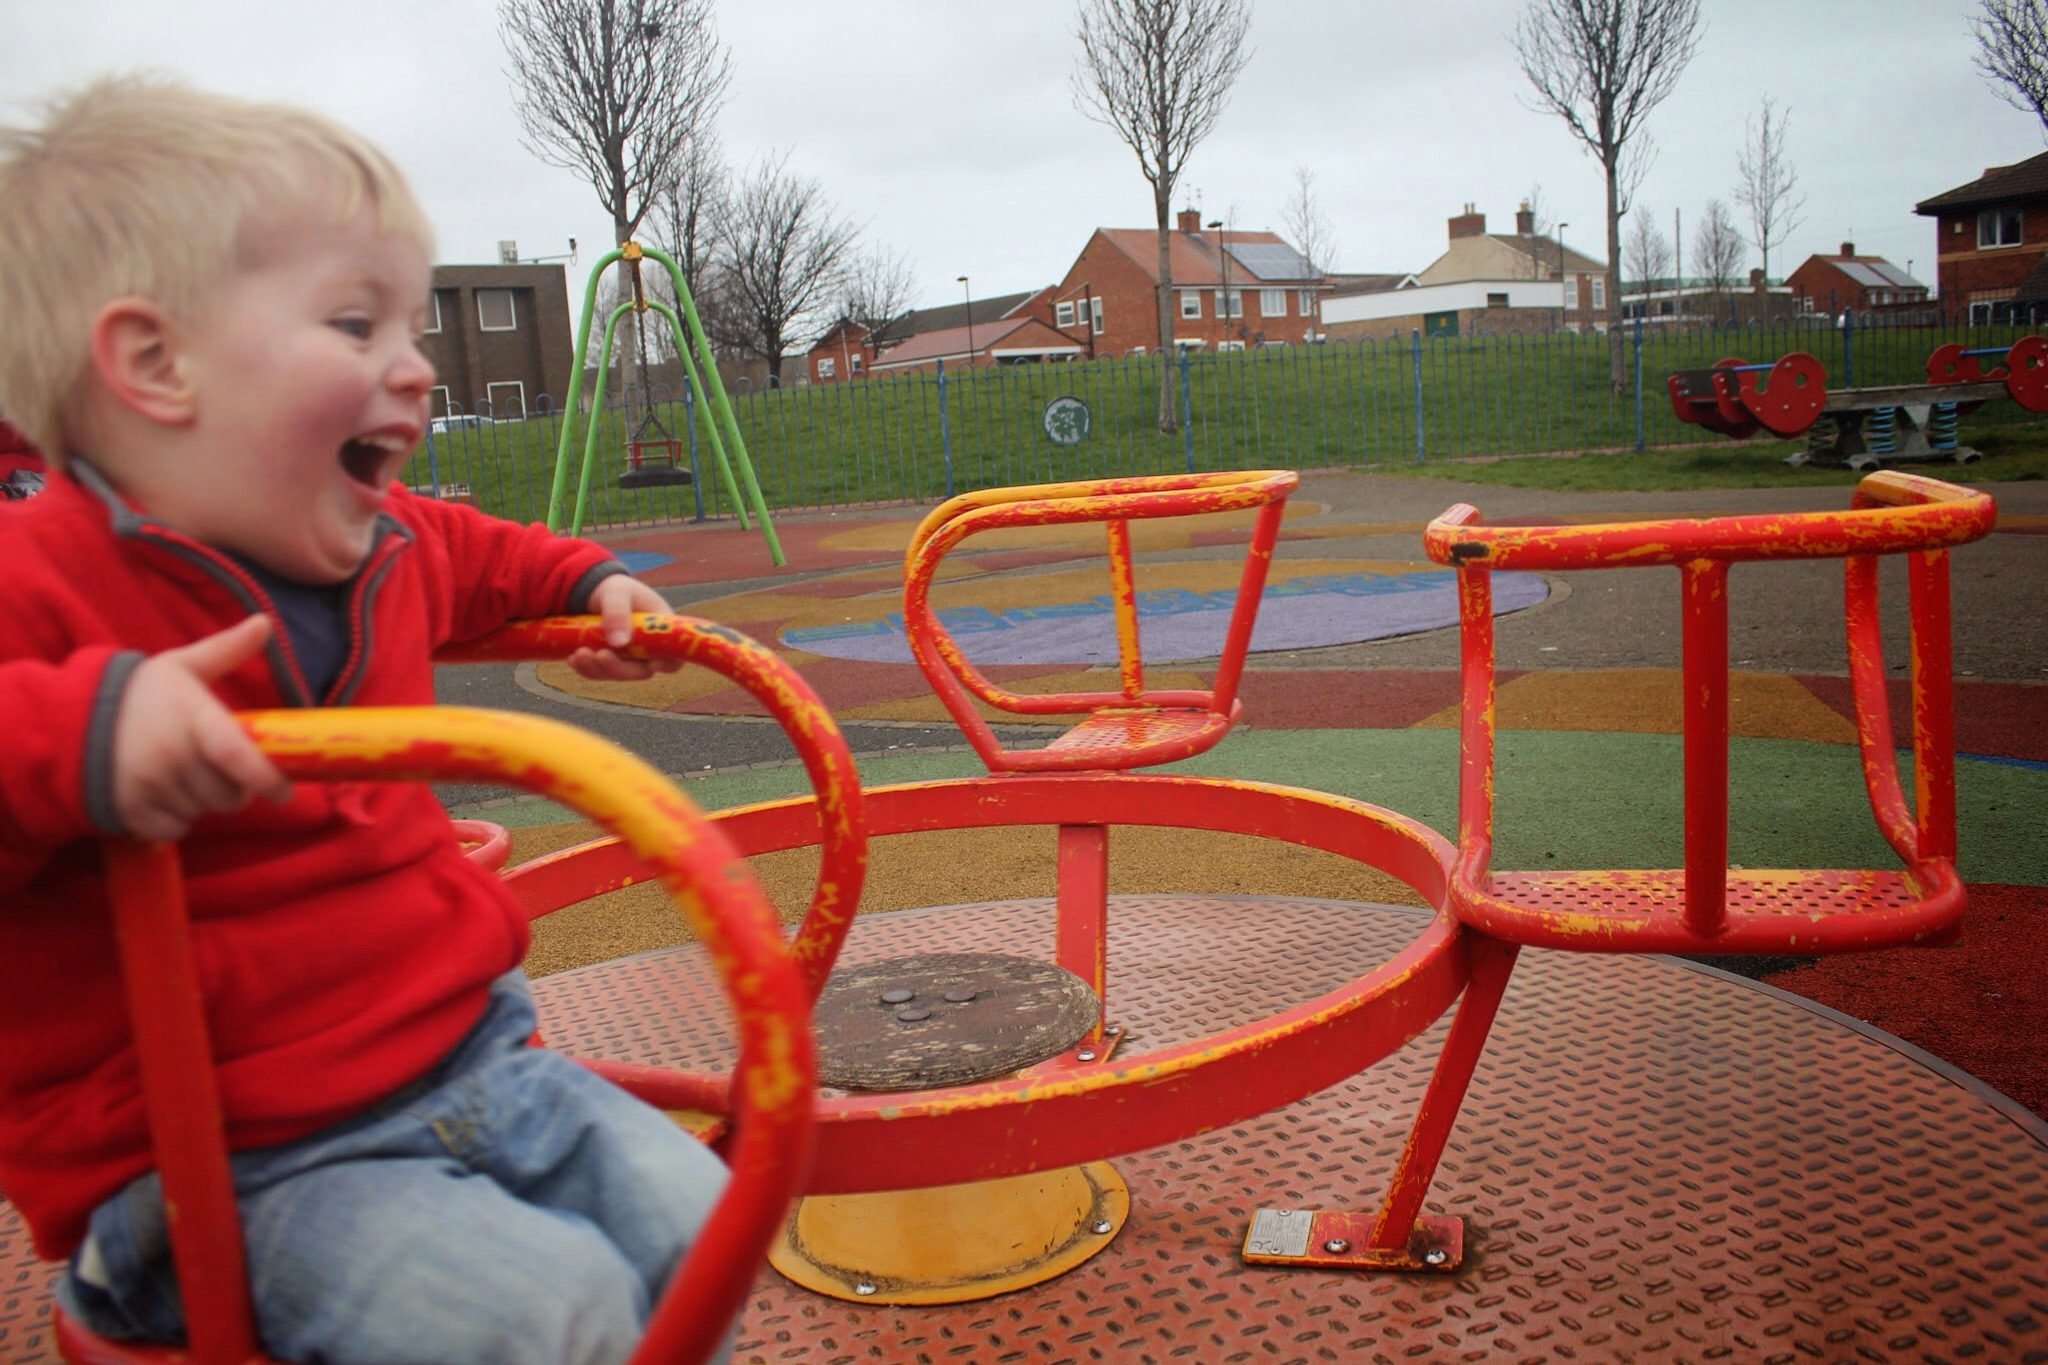 toddler laughing on roundabout pearson park orth shields